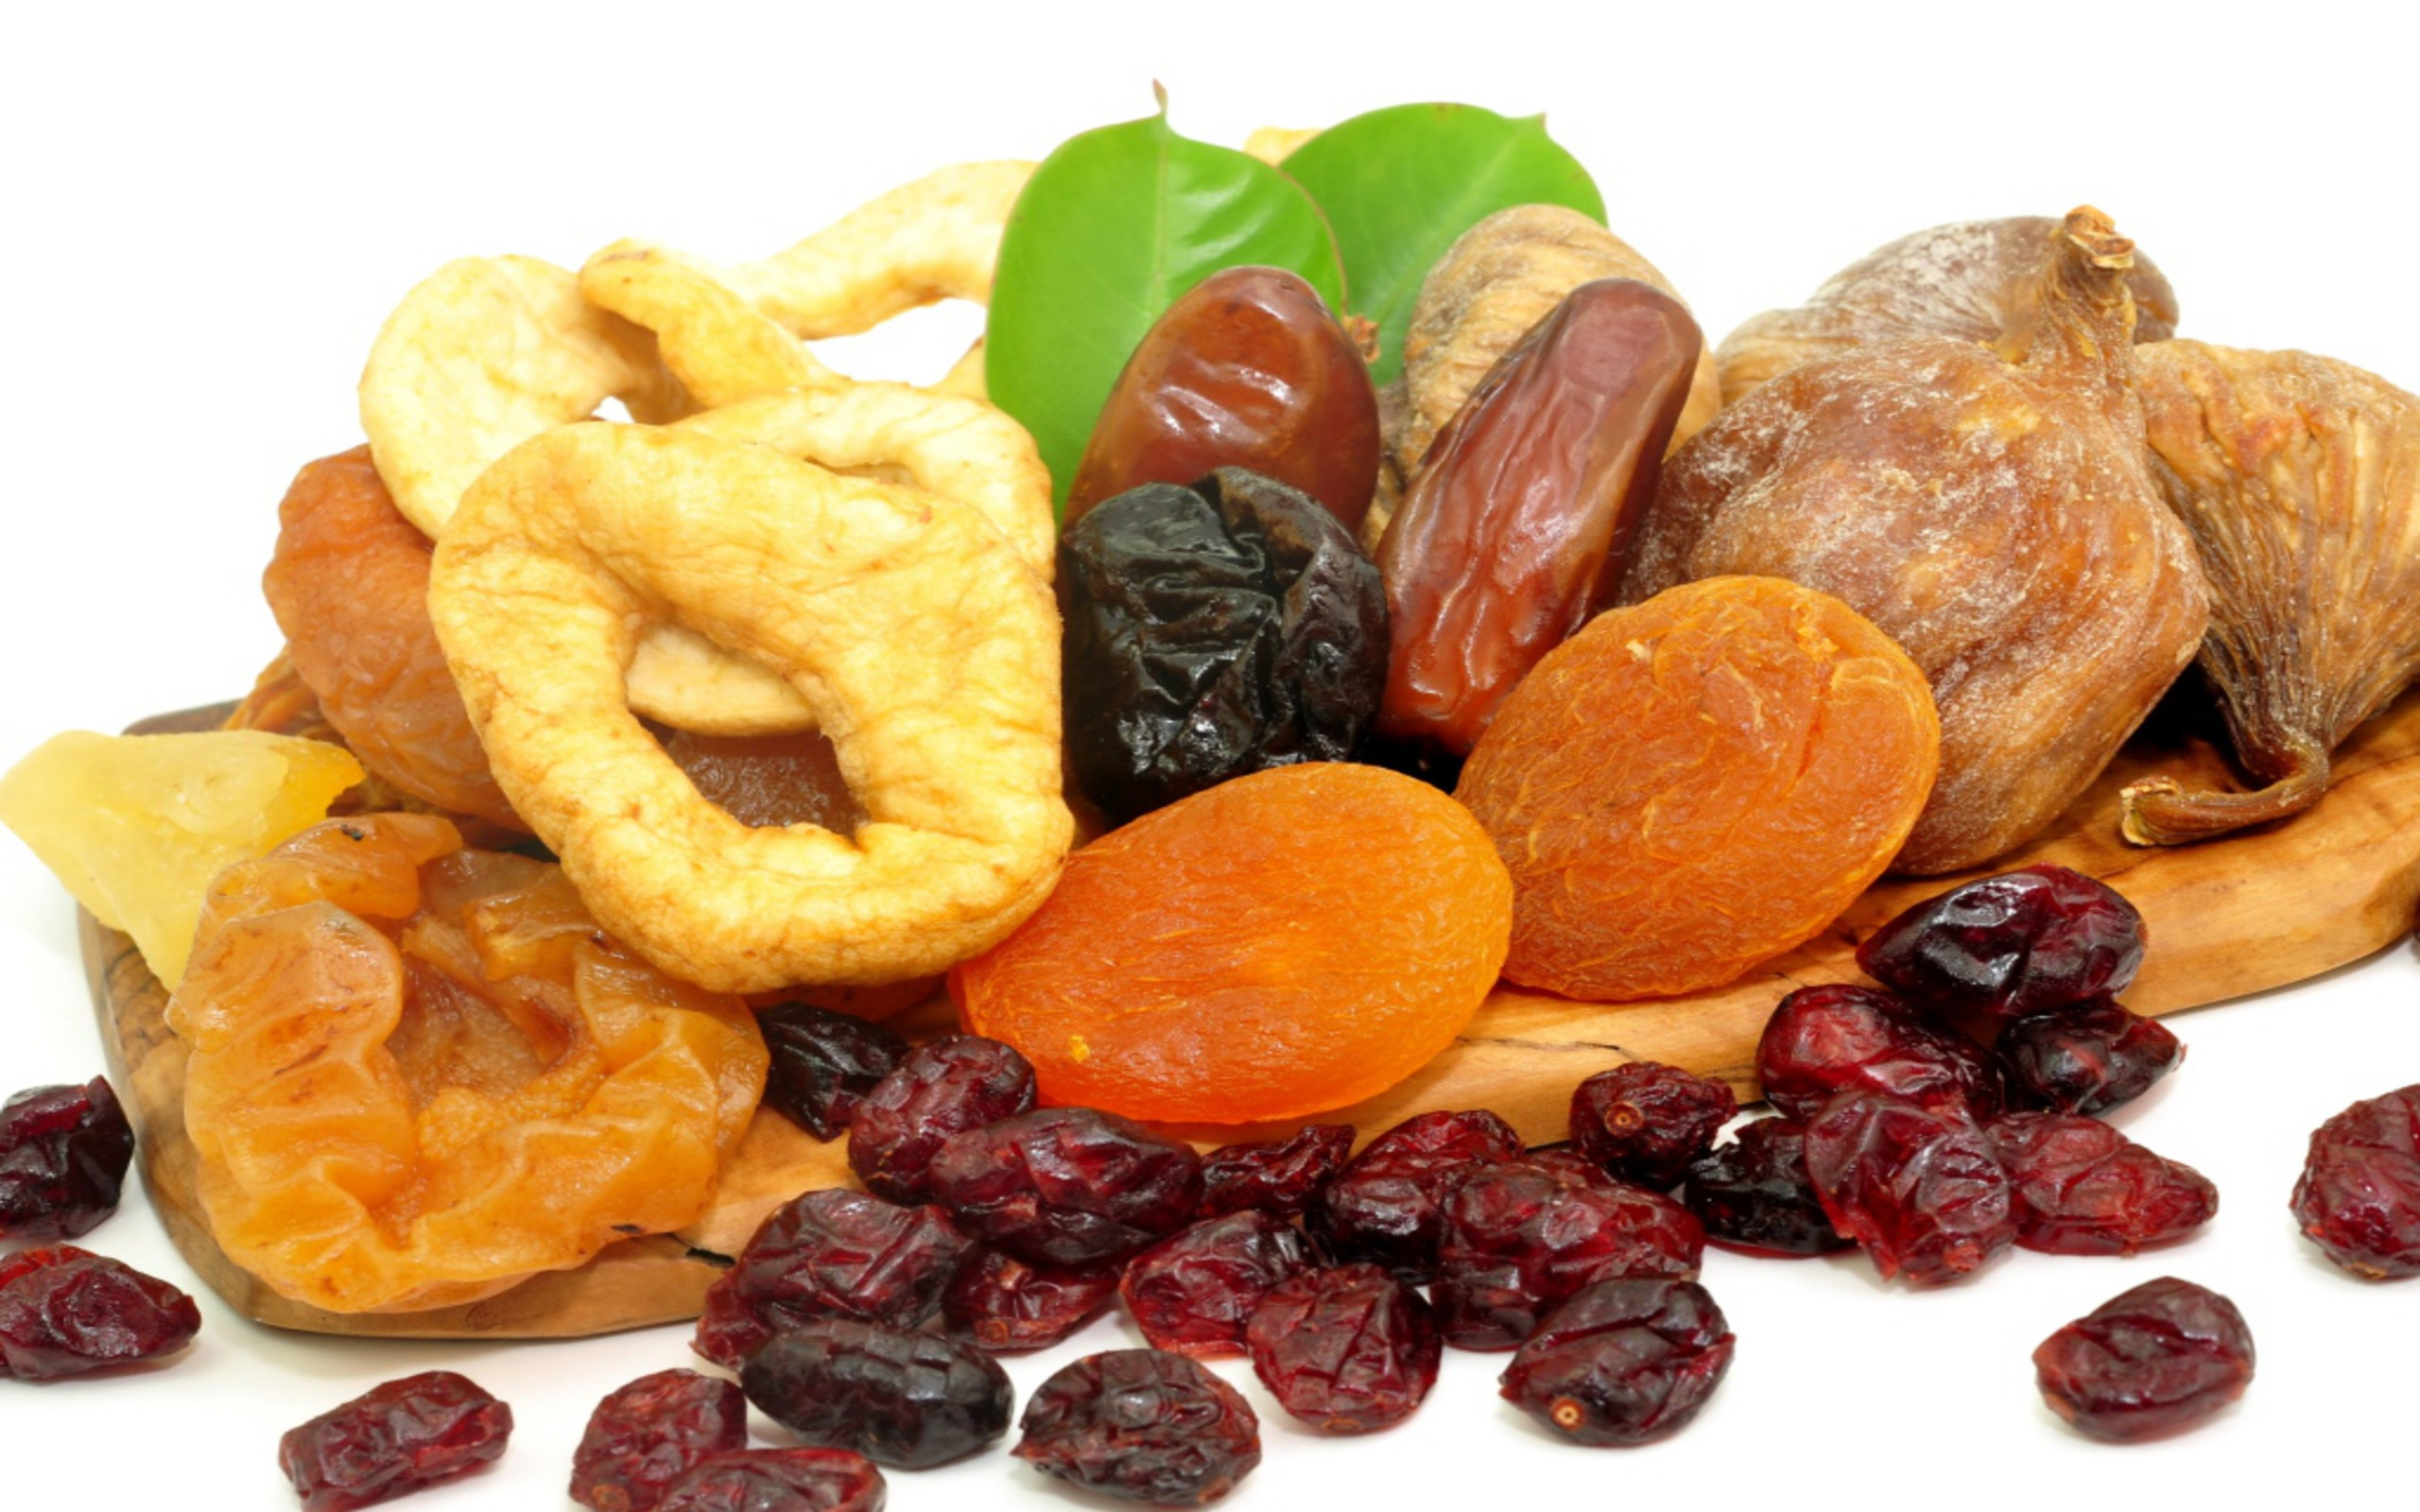 Dried Apple, Banana, Pineapples, Oranges and other dried fruits available